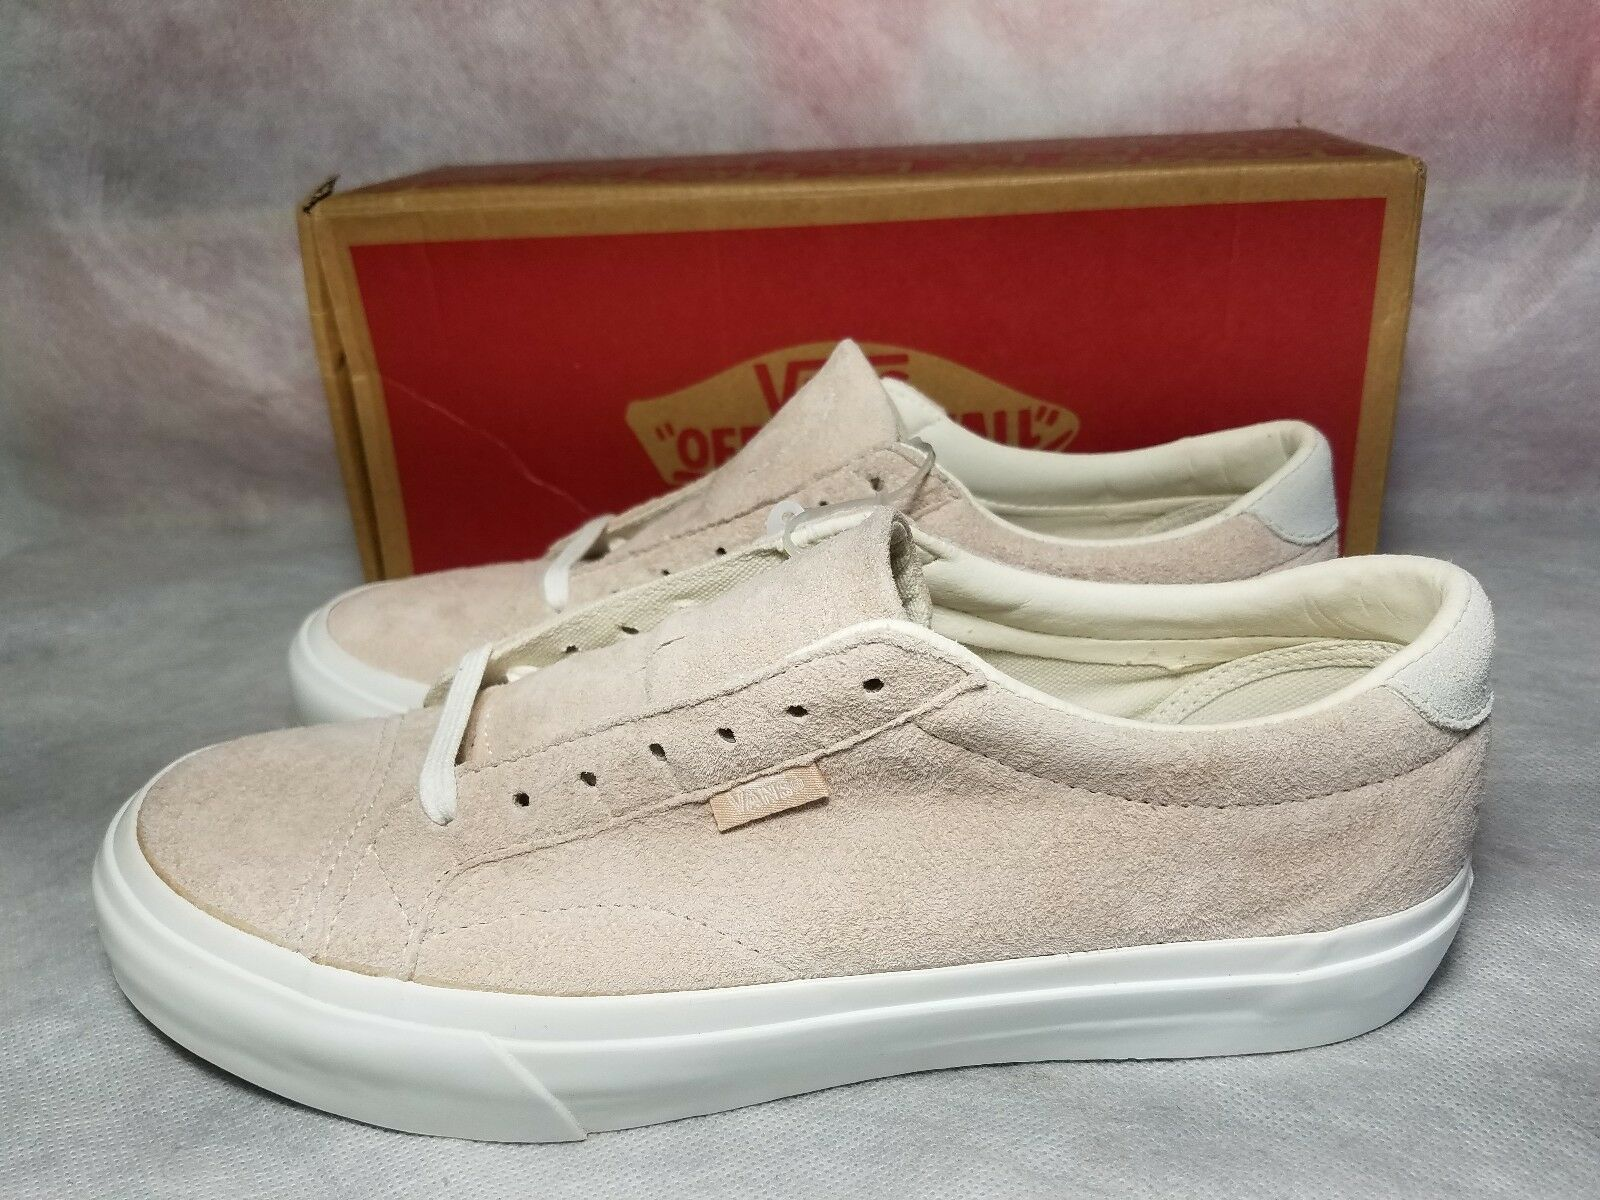 New Vans Court DX Pig Suede Silver Peony Pink 8 White Skate Shoe Men 8 Pink , Women 9.5 69ba9d